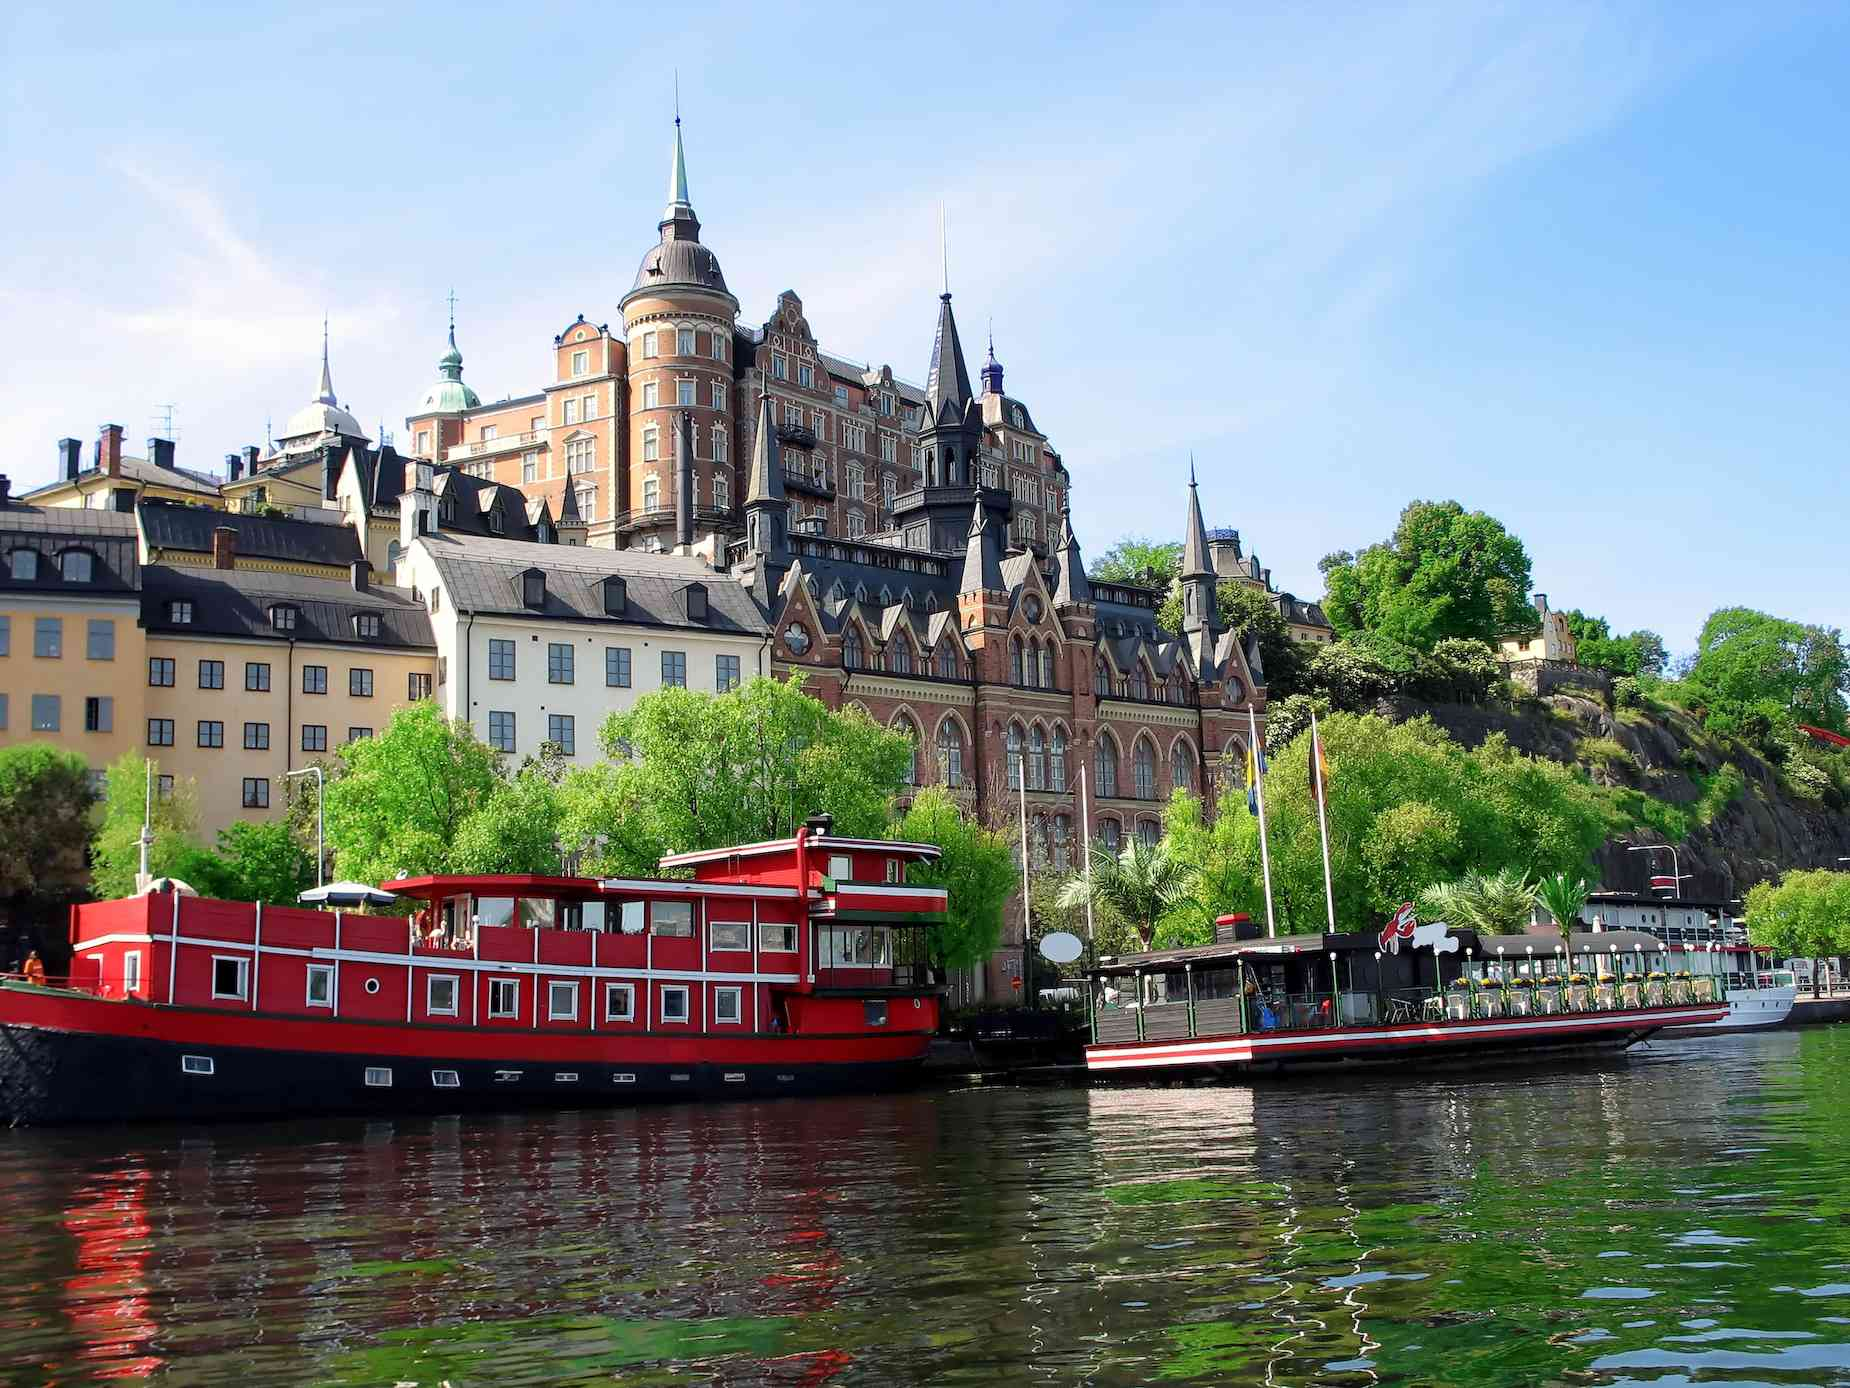 large red boat on waterway in Stockholm, Sweden